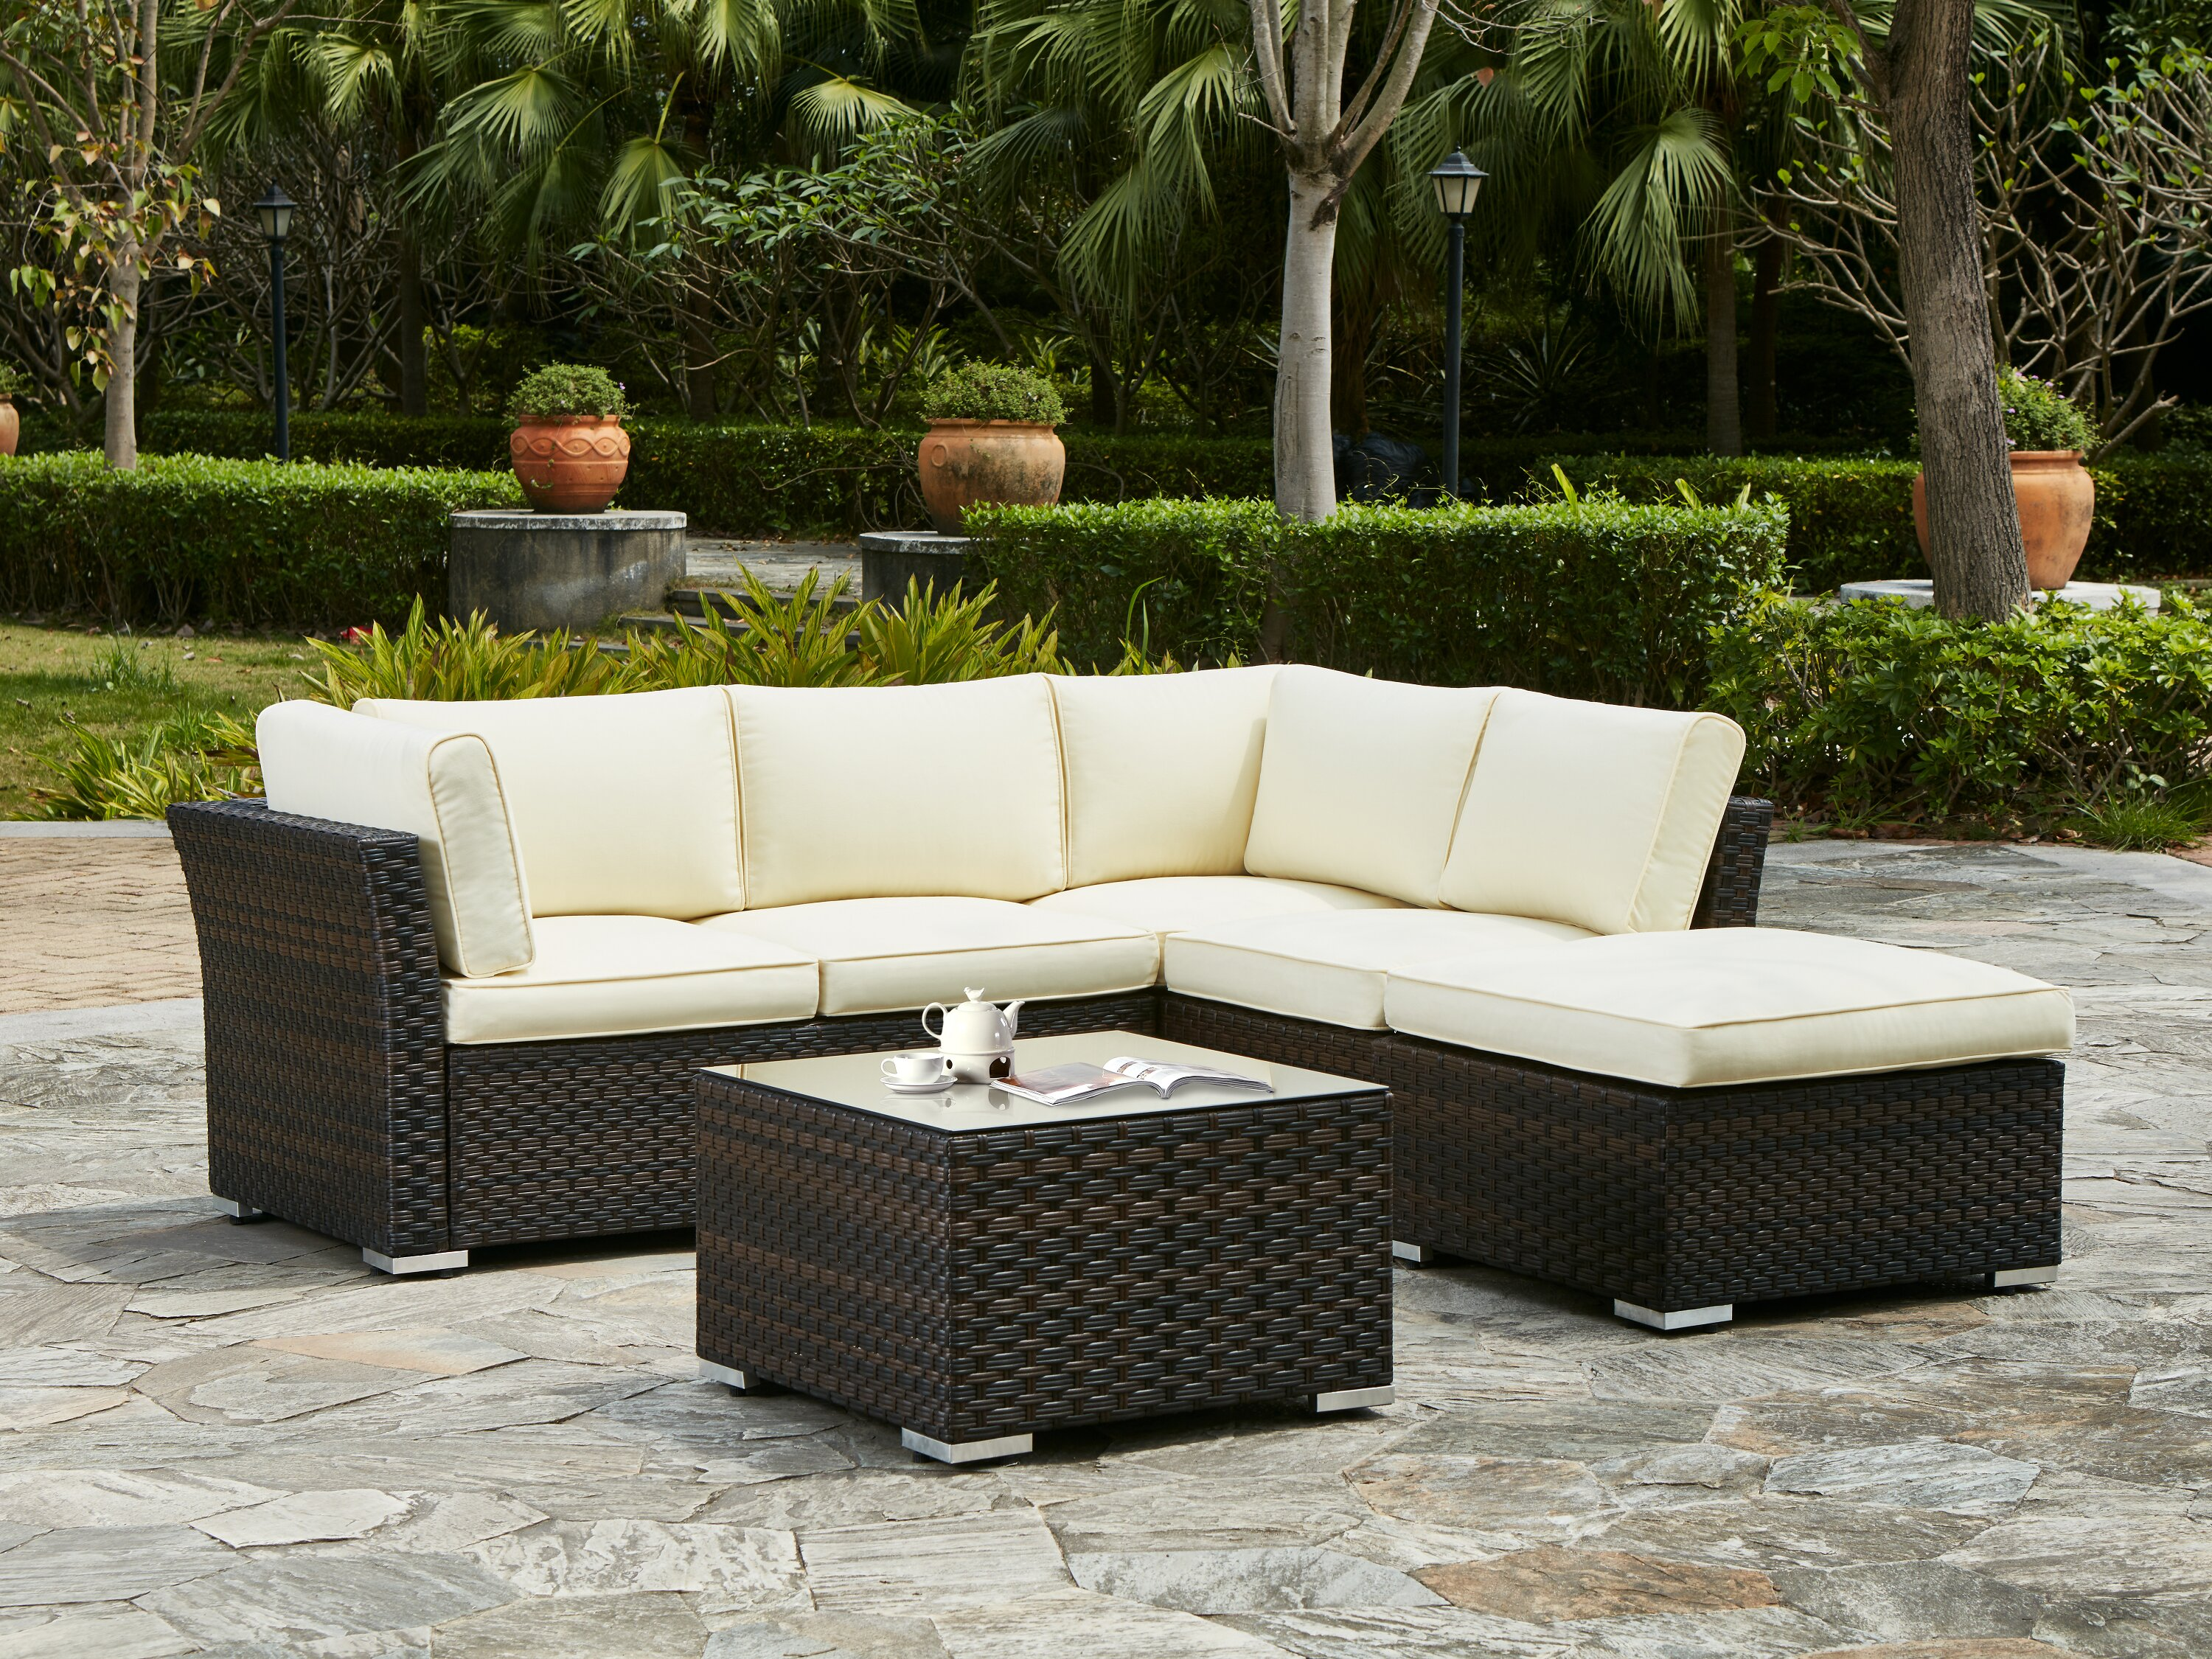 outdoor product meridianclassicallweatherwickersectional set cushions inuse sectional round cfm furniture meridian sunbrella living patio with belham hayneedle wicker